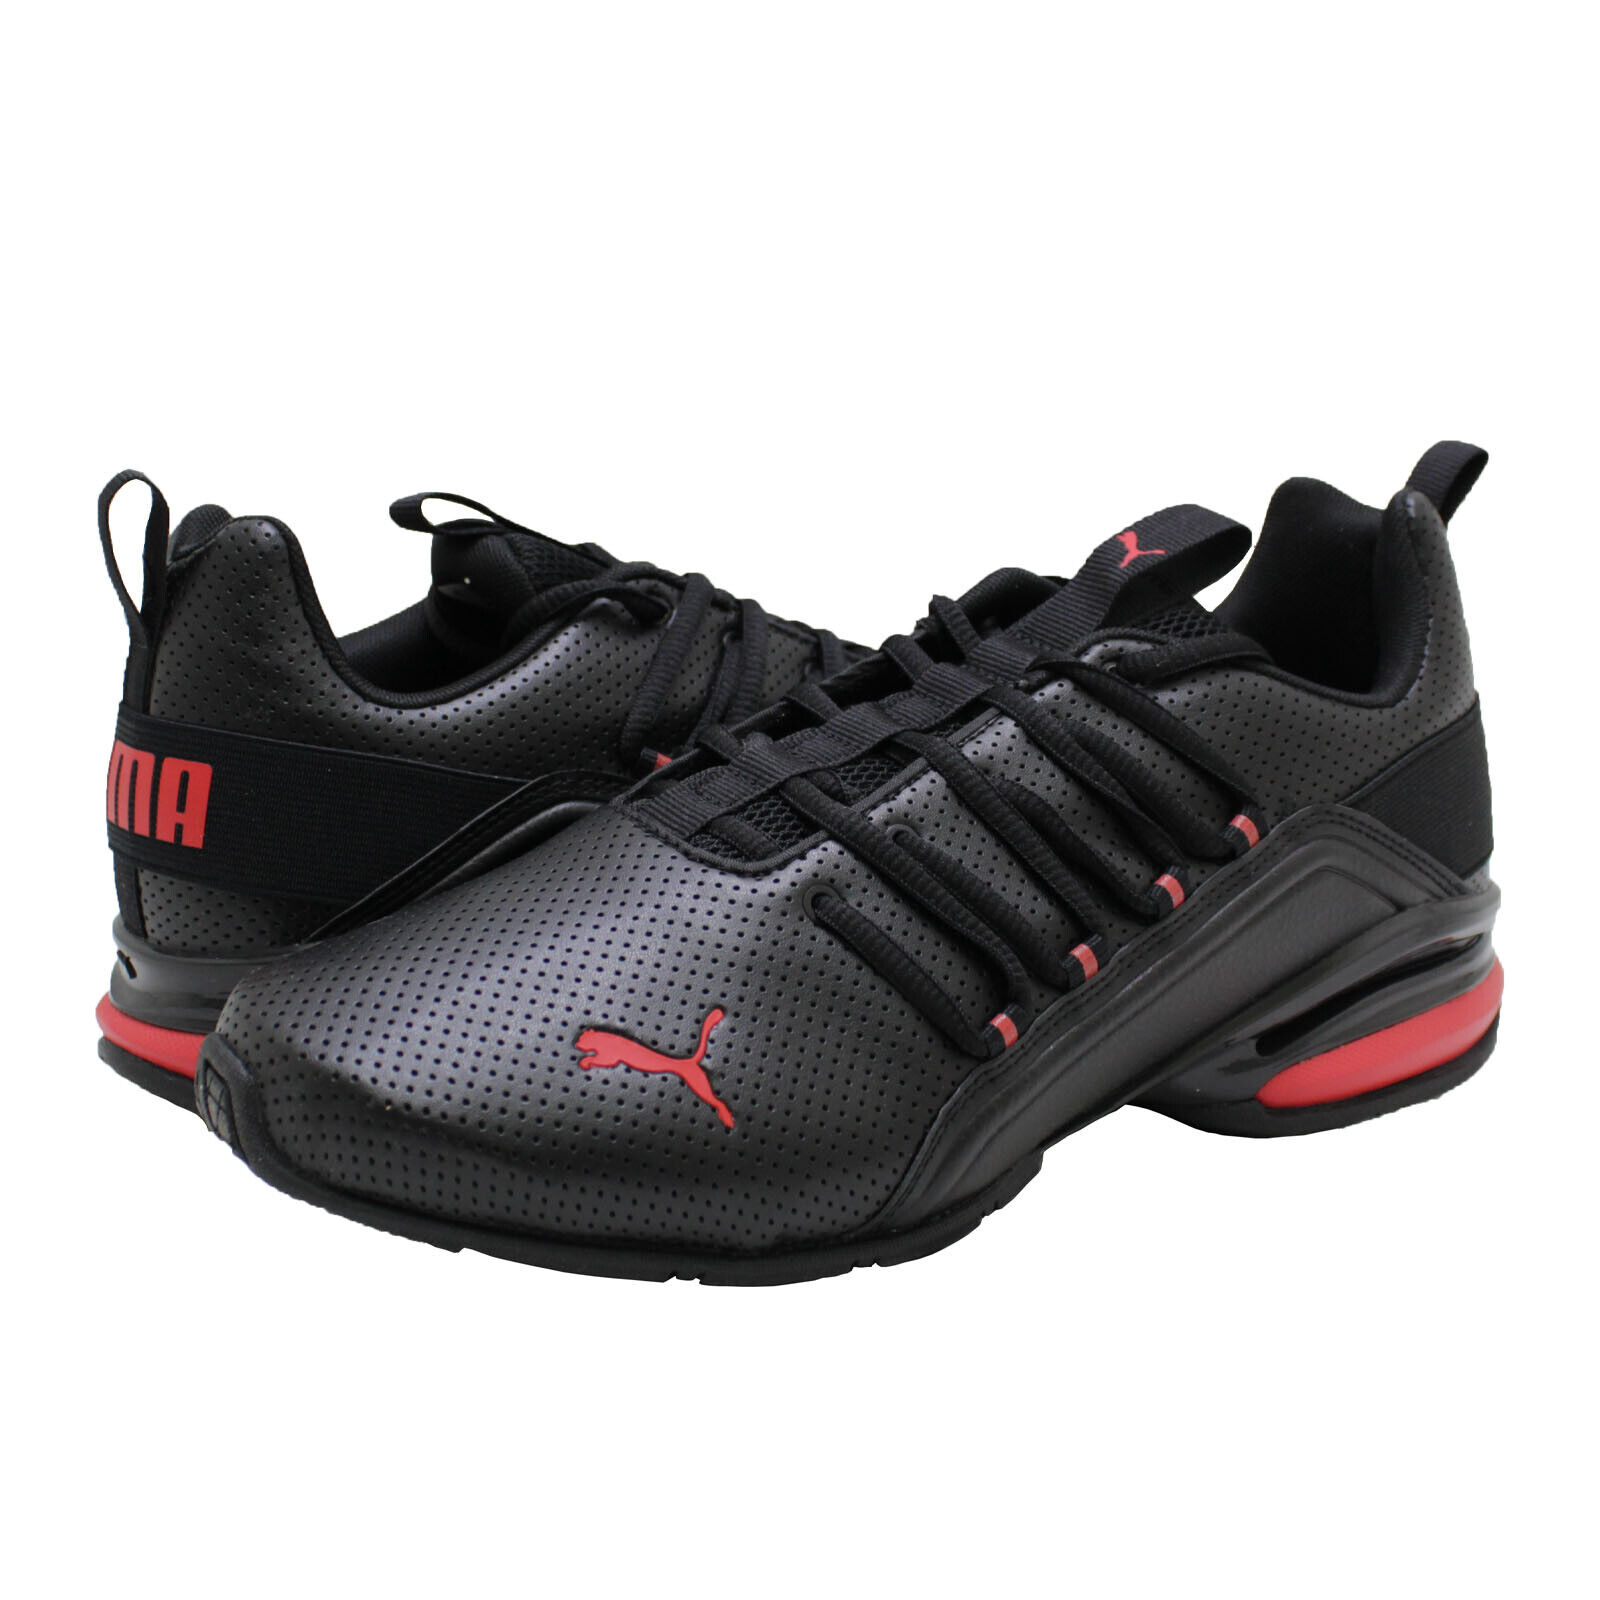 Men's Shoes PUMA AXELION PERF Athletic Training Sneakers 193